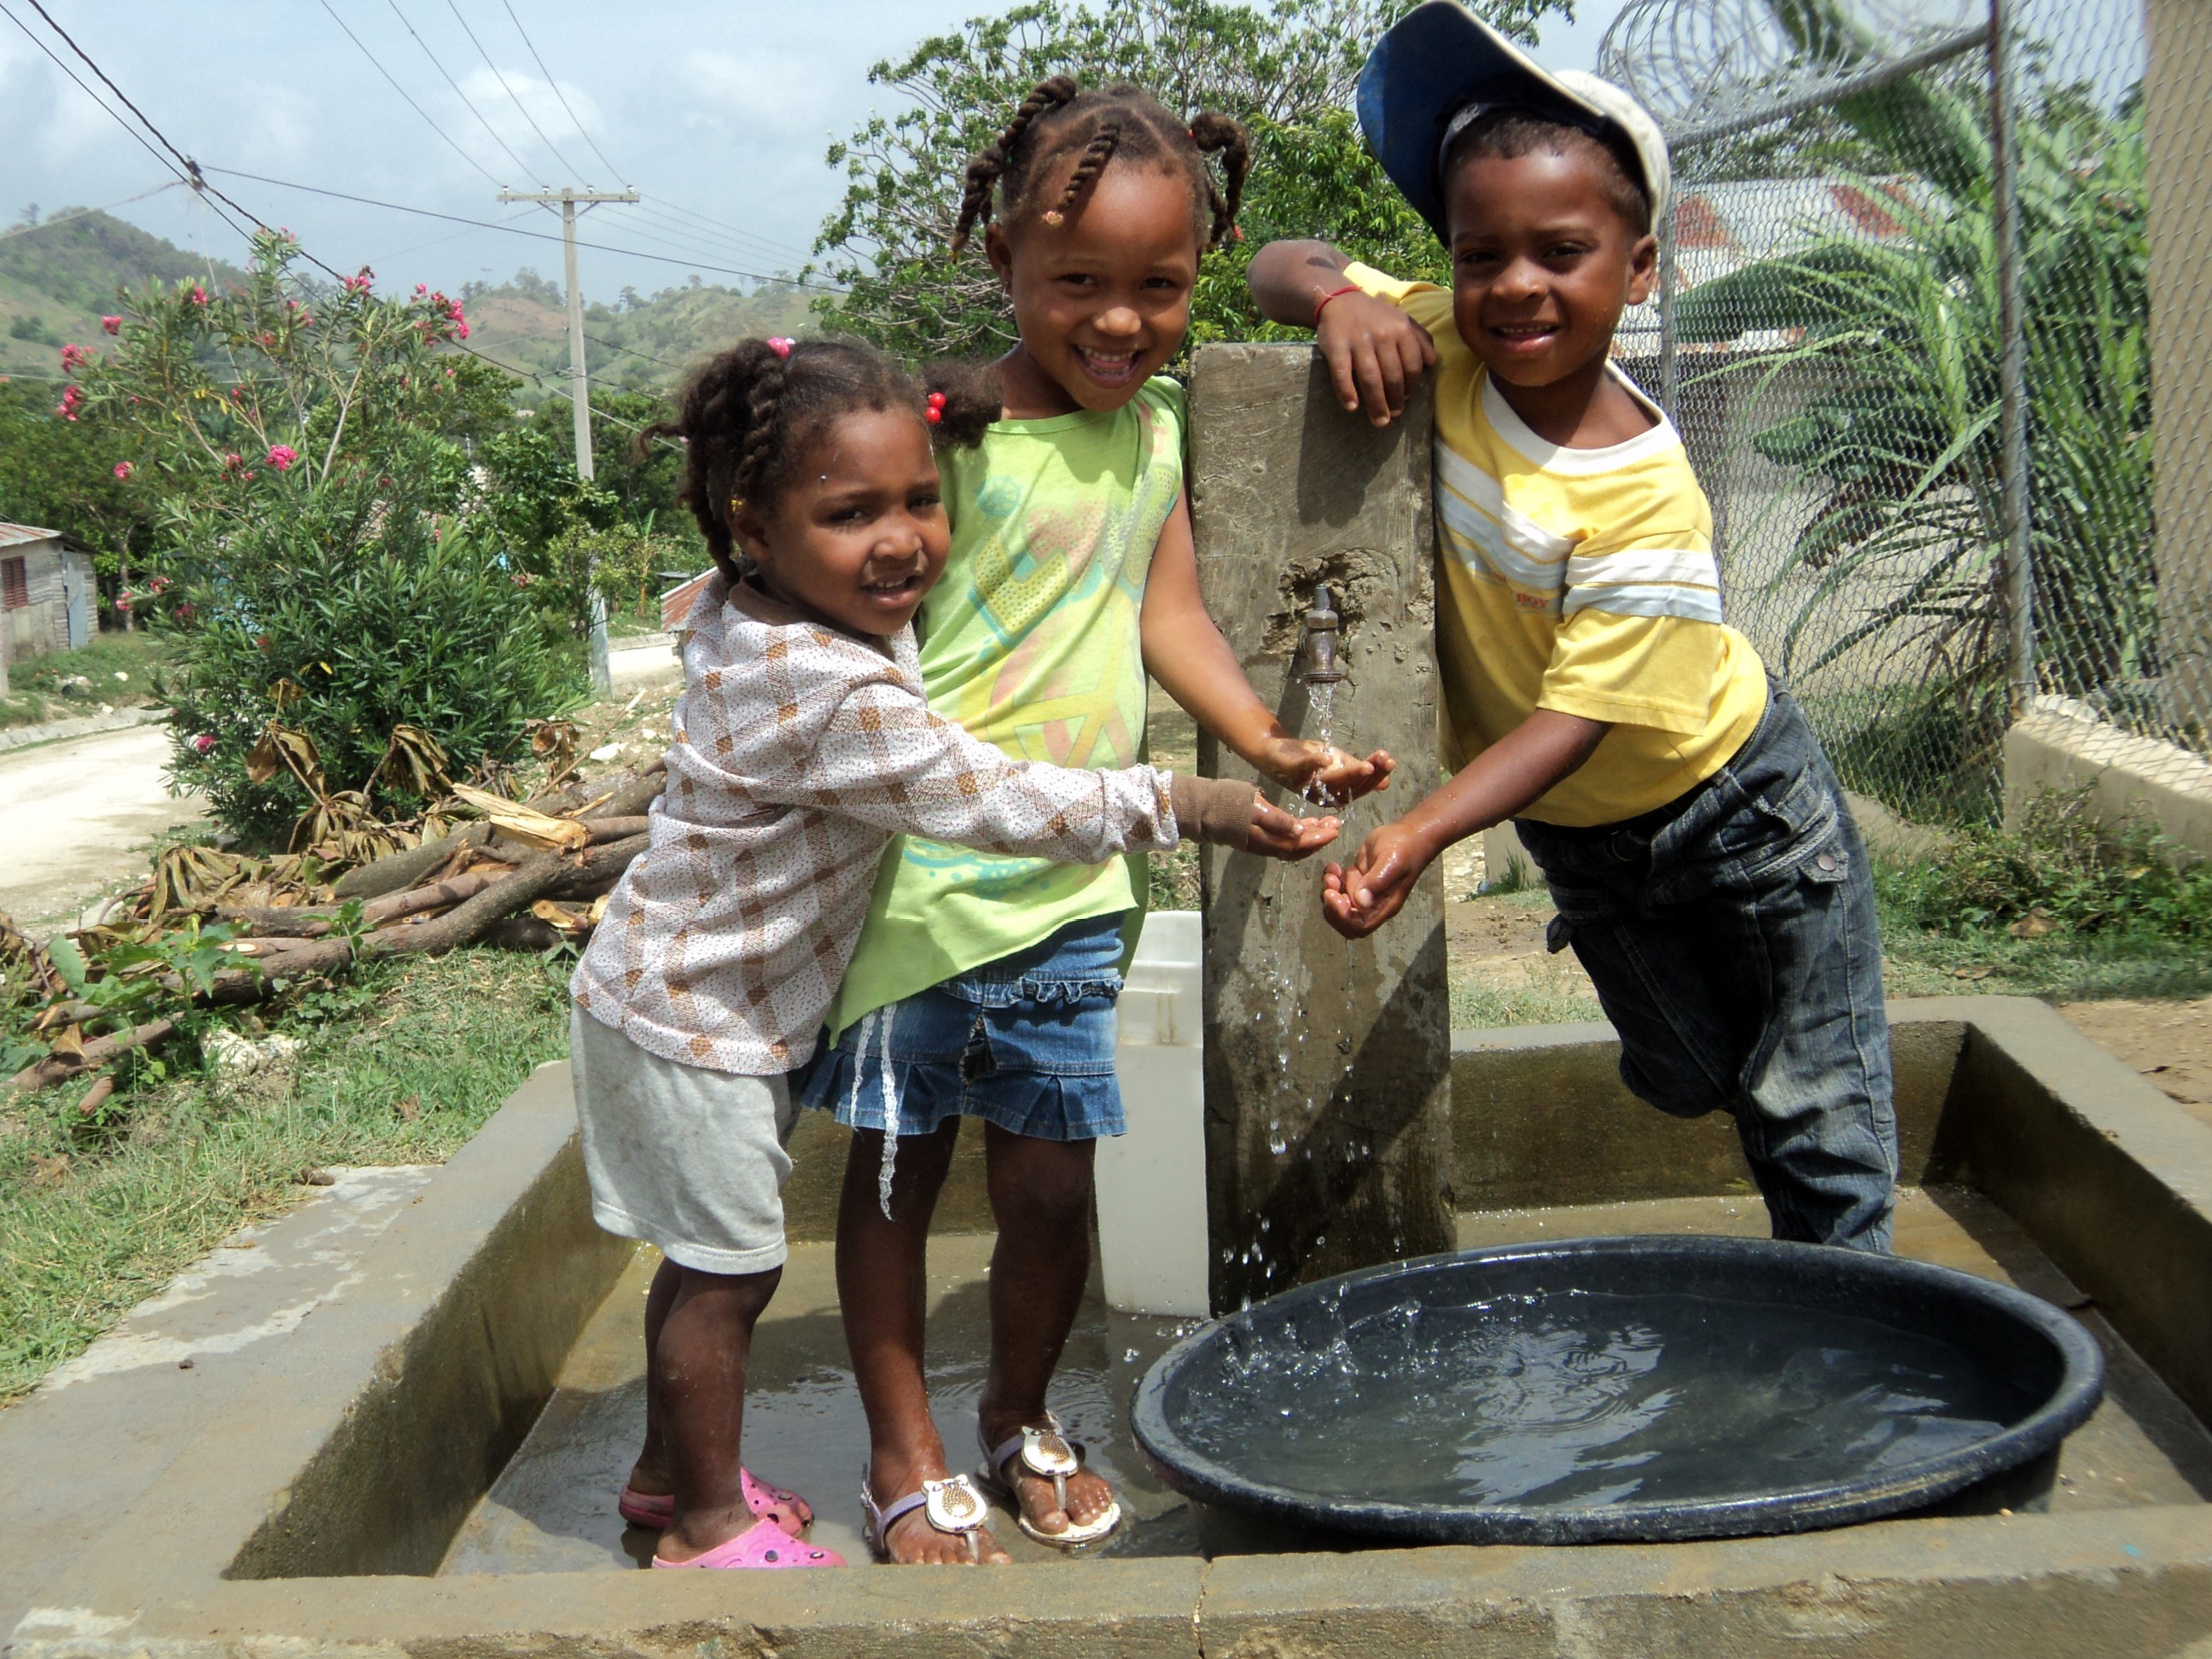 Kids at a water fountain